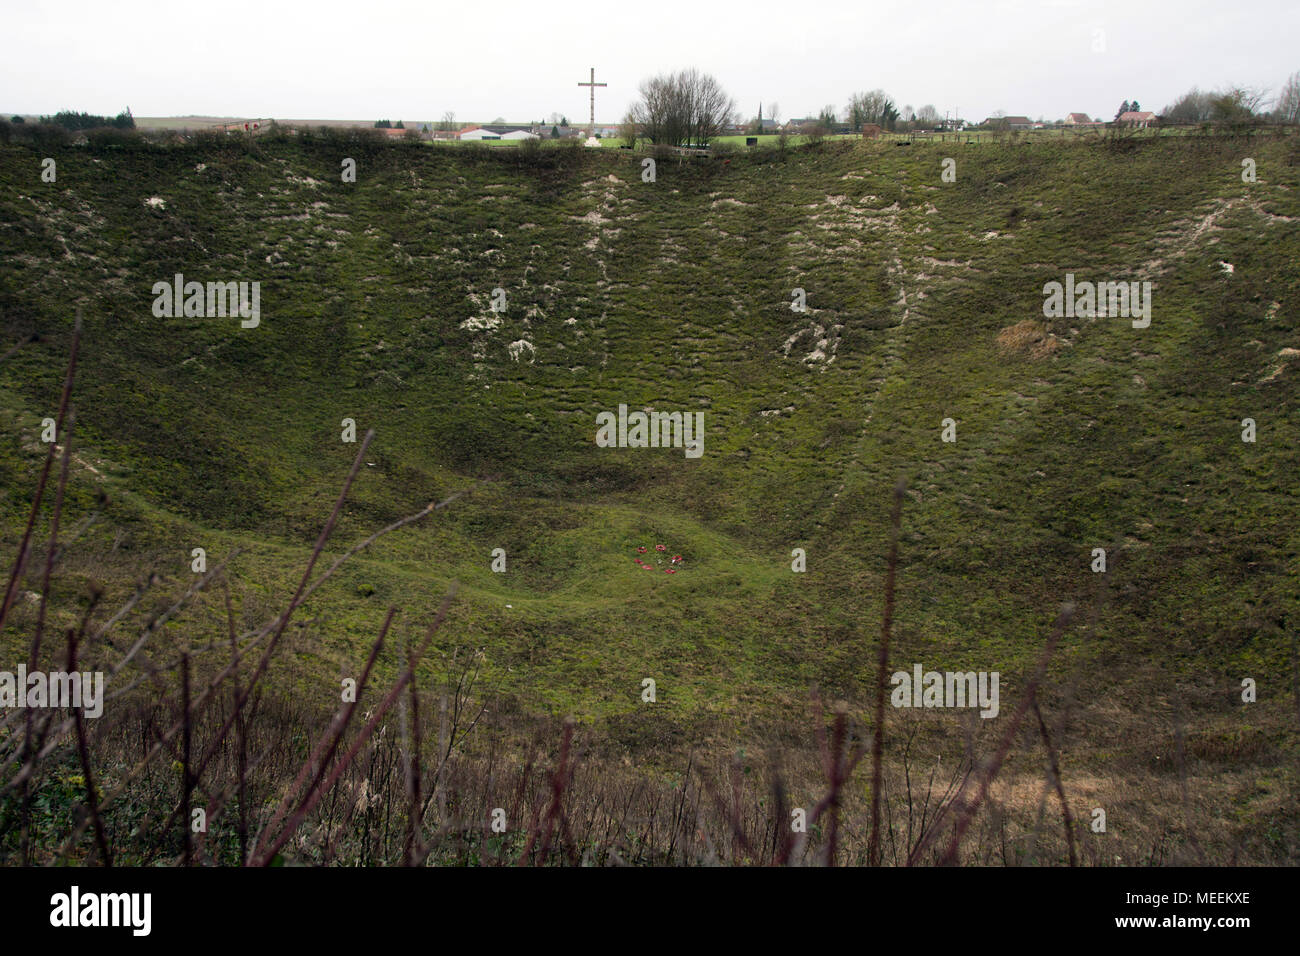 Lochnagar Crater, Ovillers, France showing massive hole with a cross in the background on the horizon - Stock Image